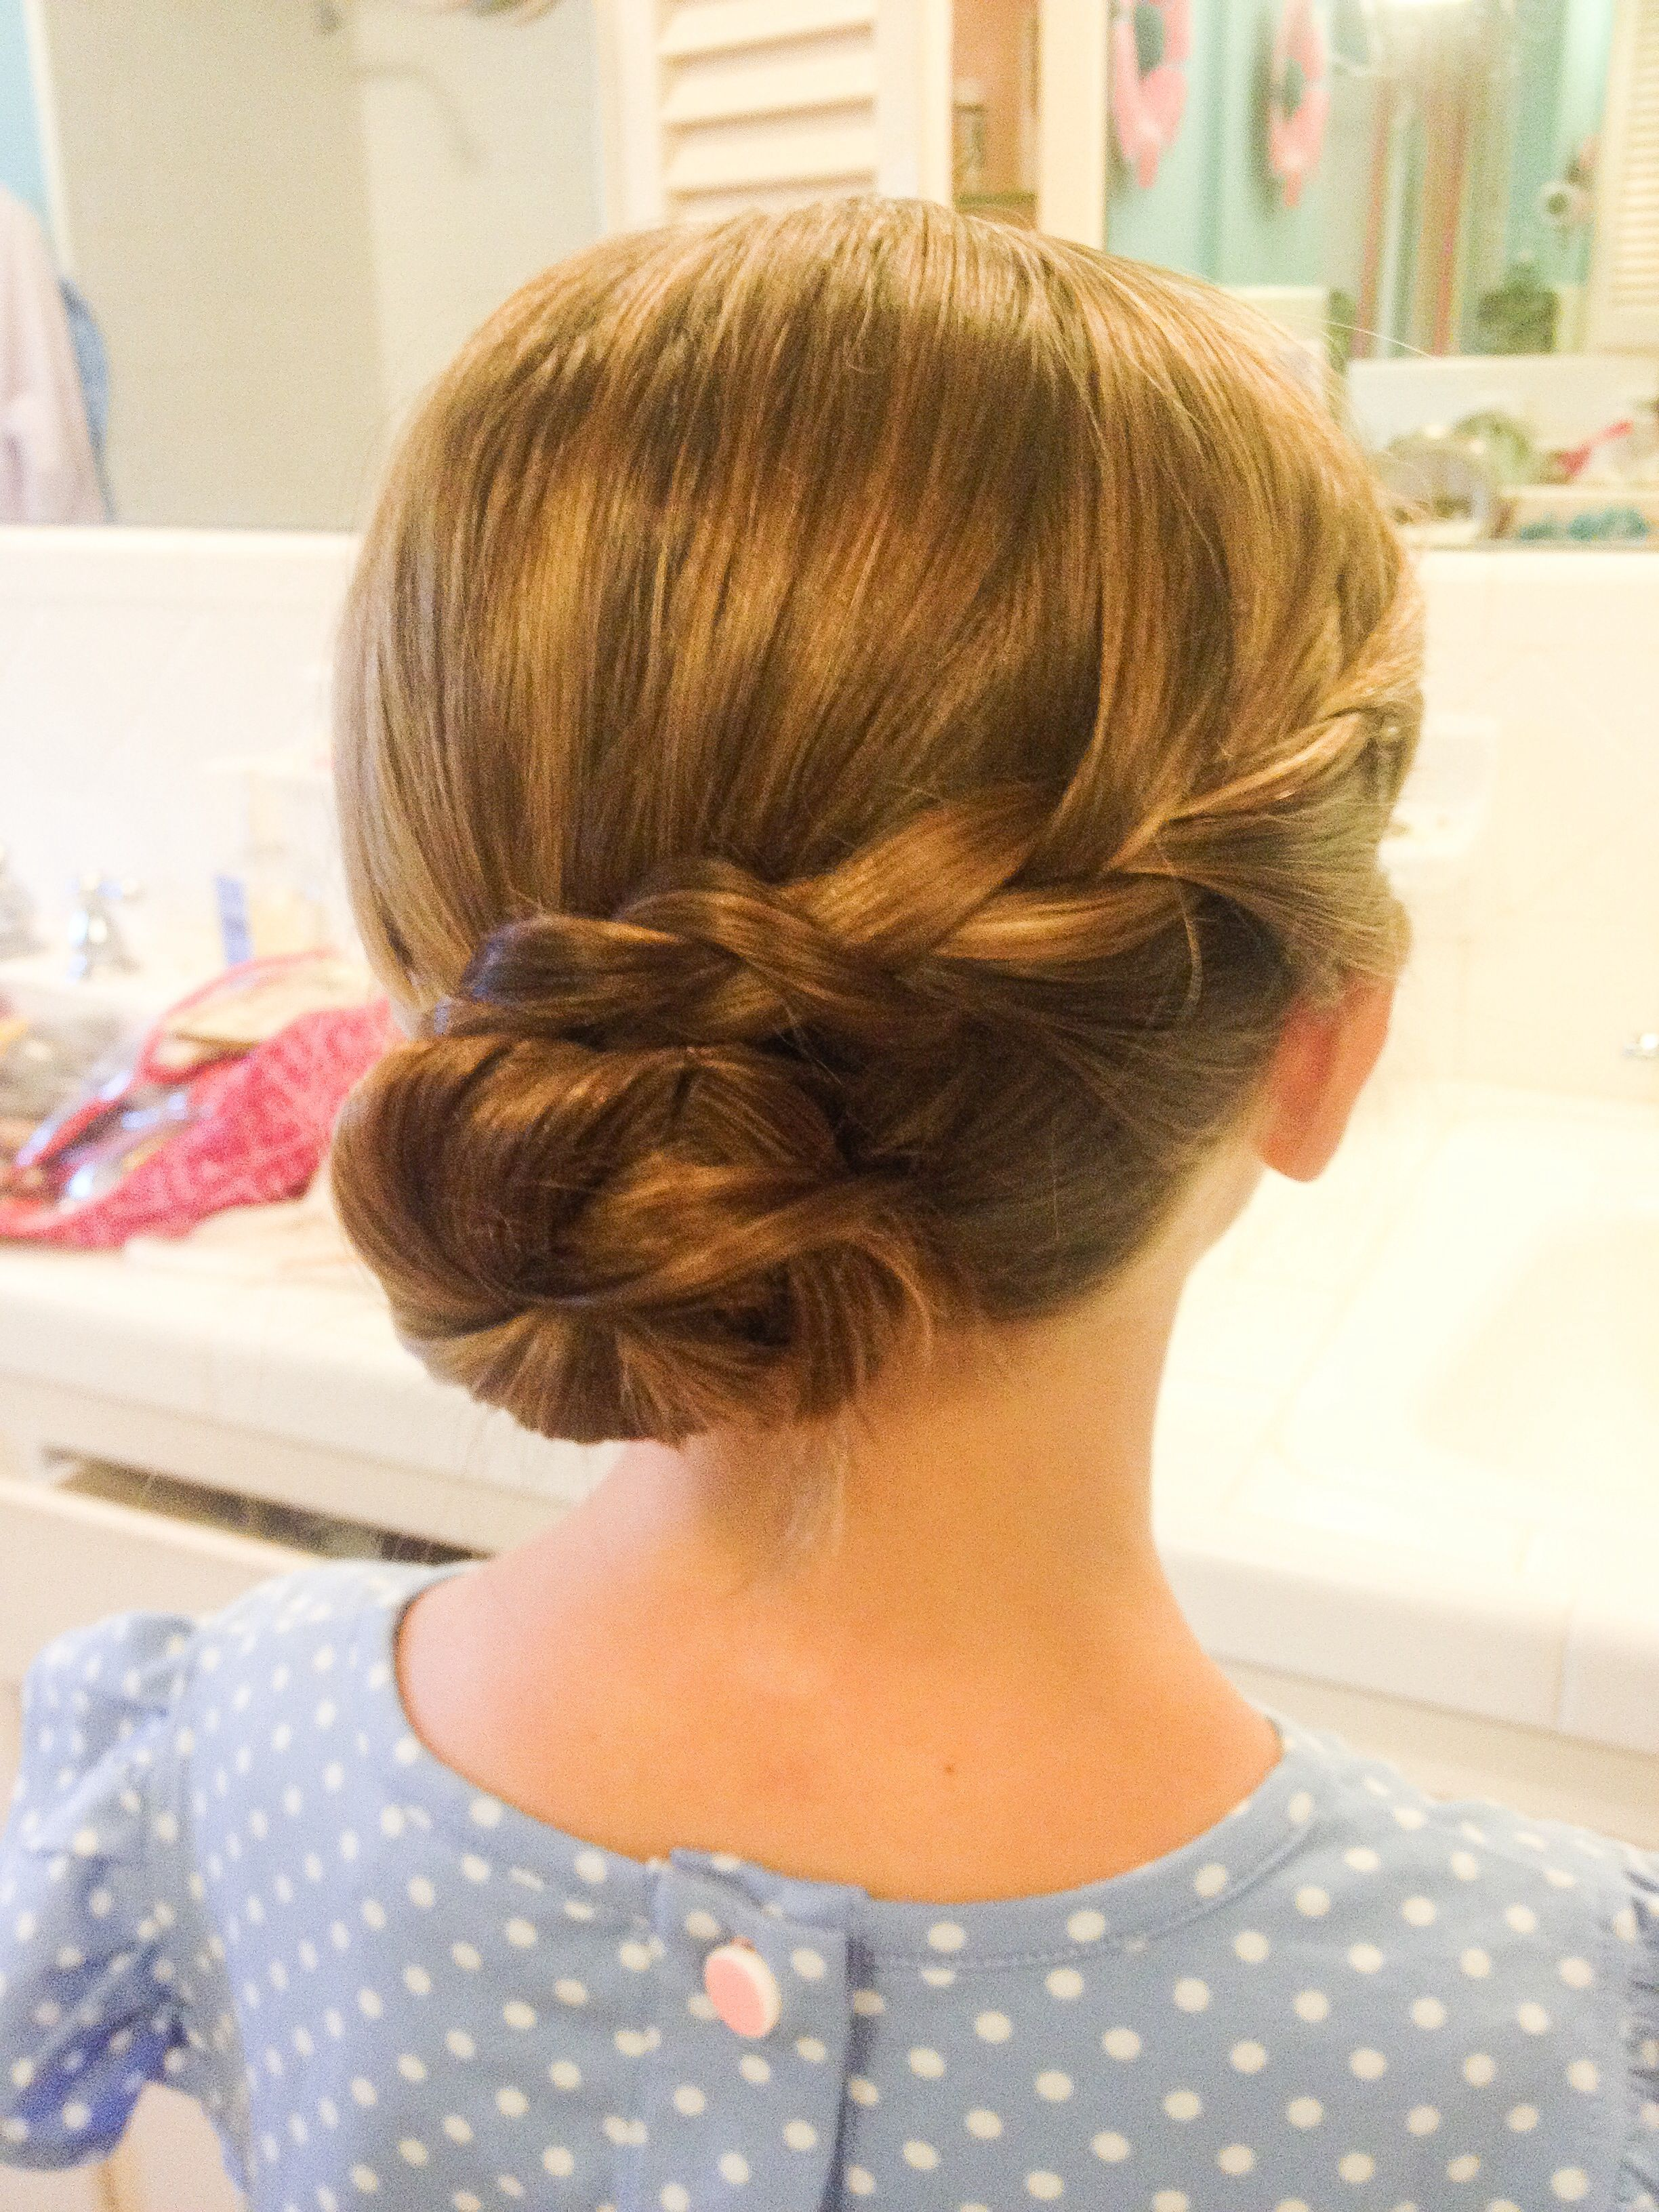 Children S Hairstyles Kids Up Do Blond Hair Braided Up